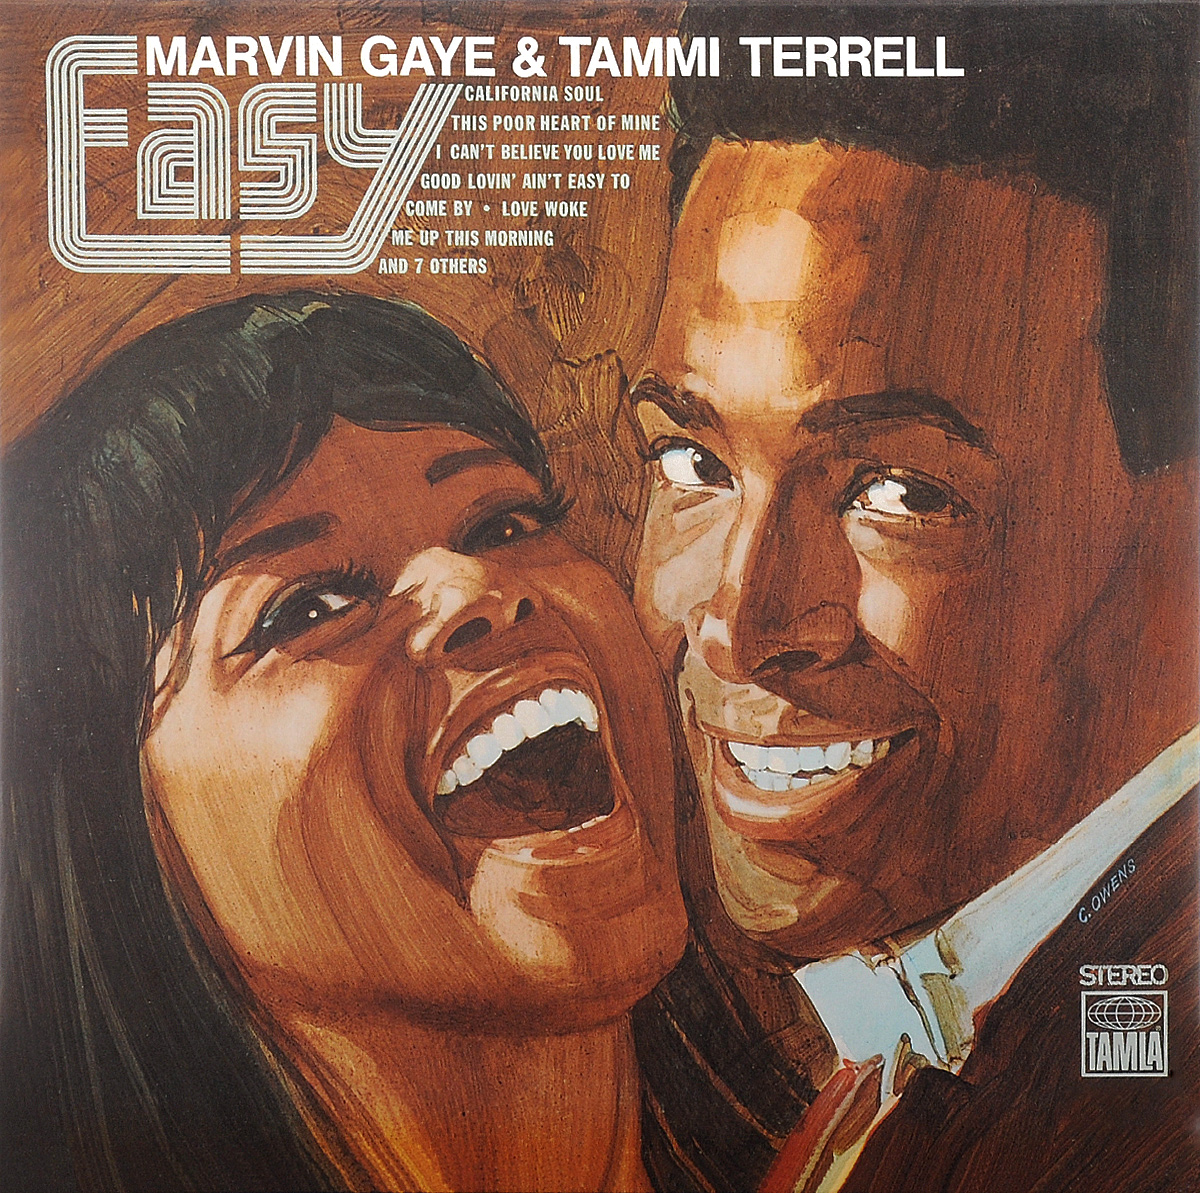 Марвин Гэй,Тамми Тэррелл Marvin Gaye & Tammi Terrell. Easy (LP) платье emilio pucci синий